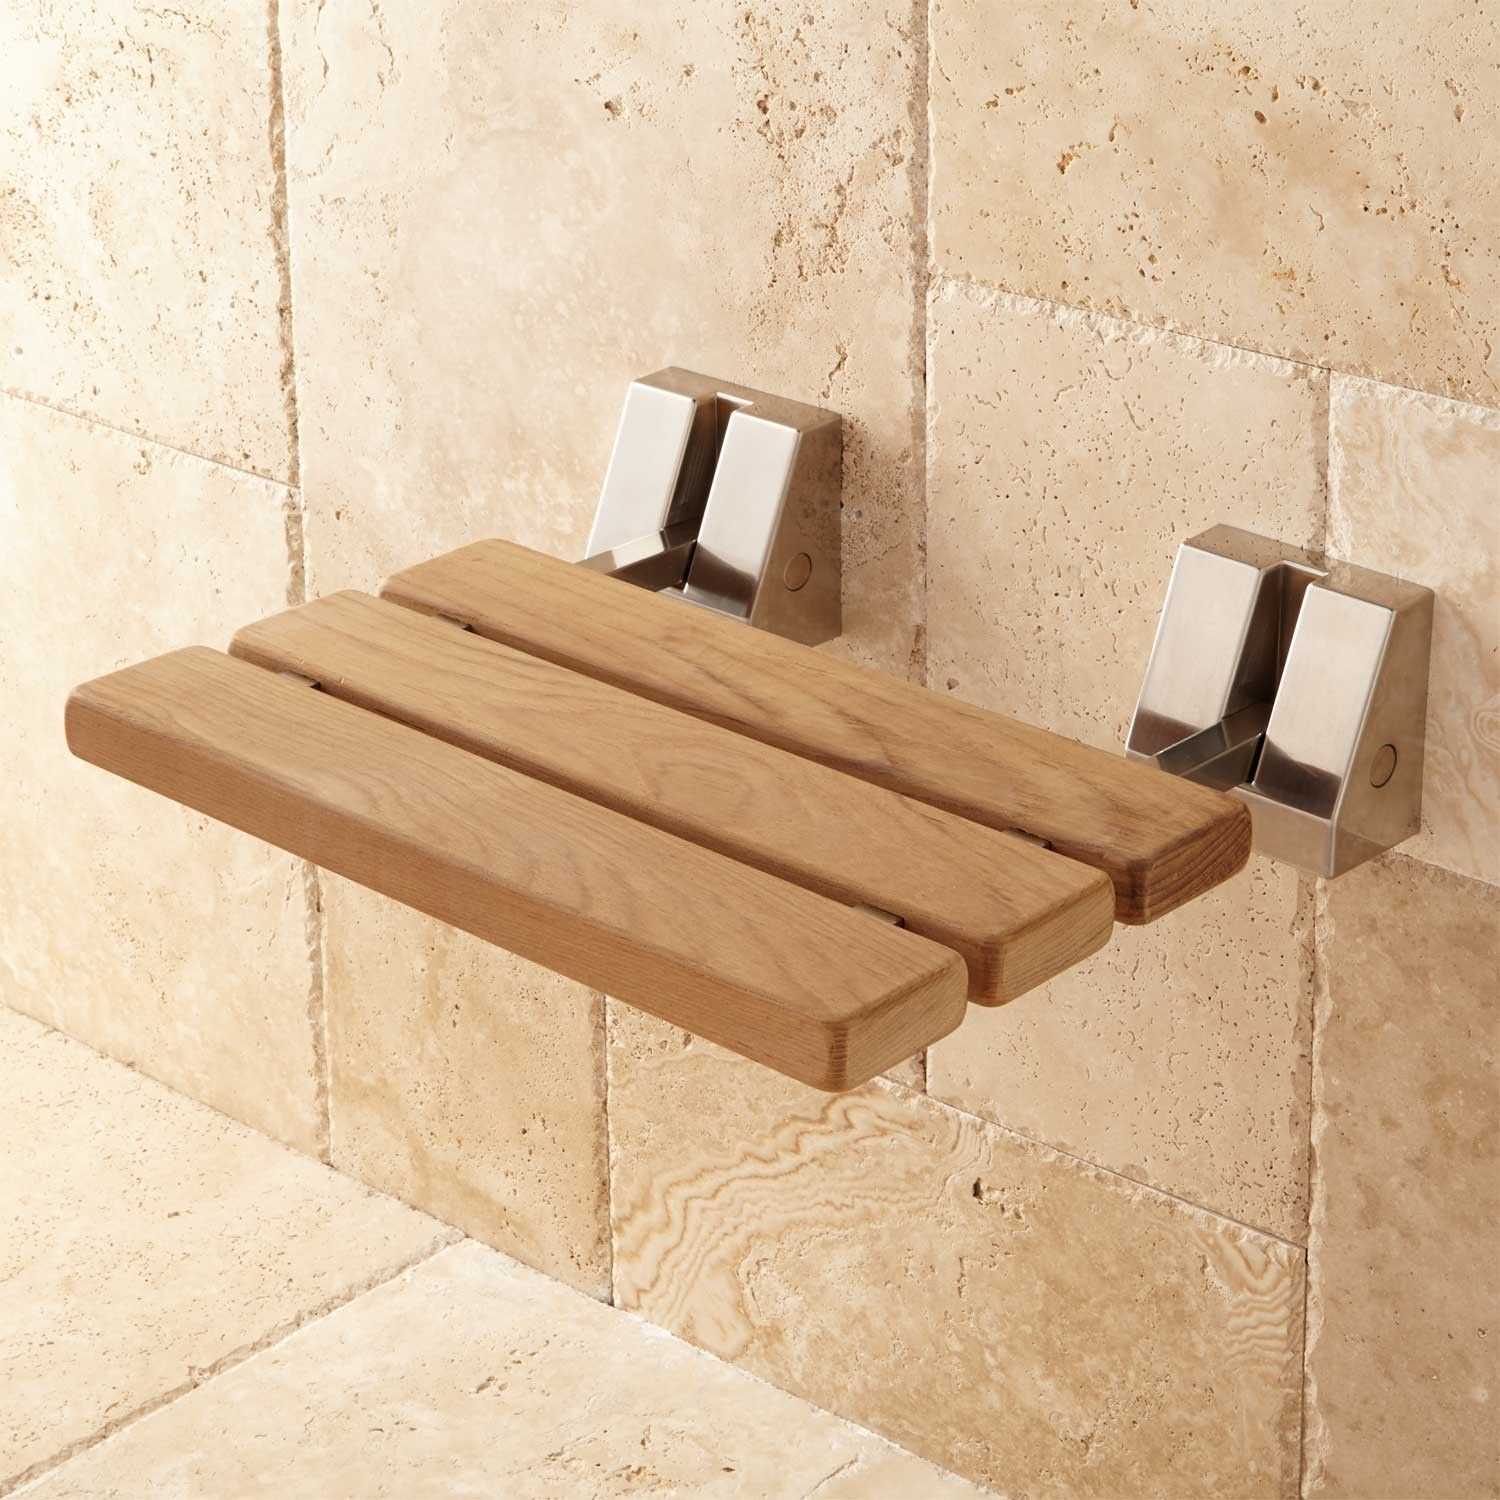 Wall mount teak folding shower seat shower seat teak and bathroom accessories Bath bench